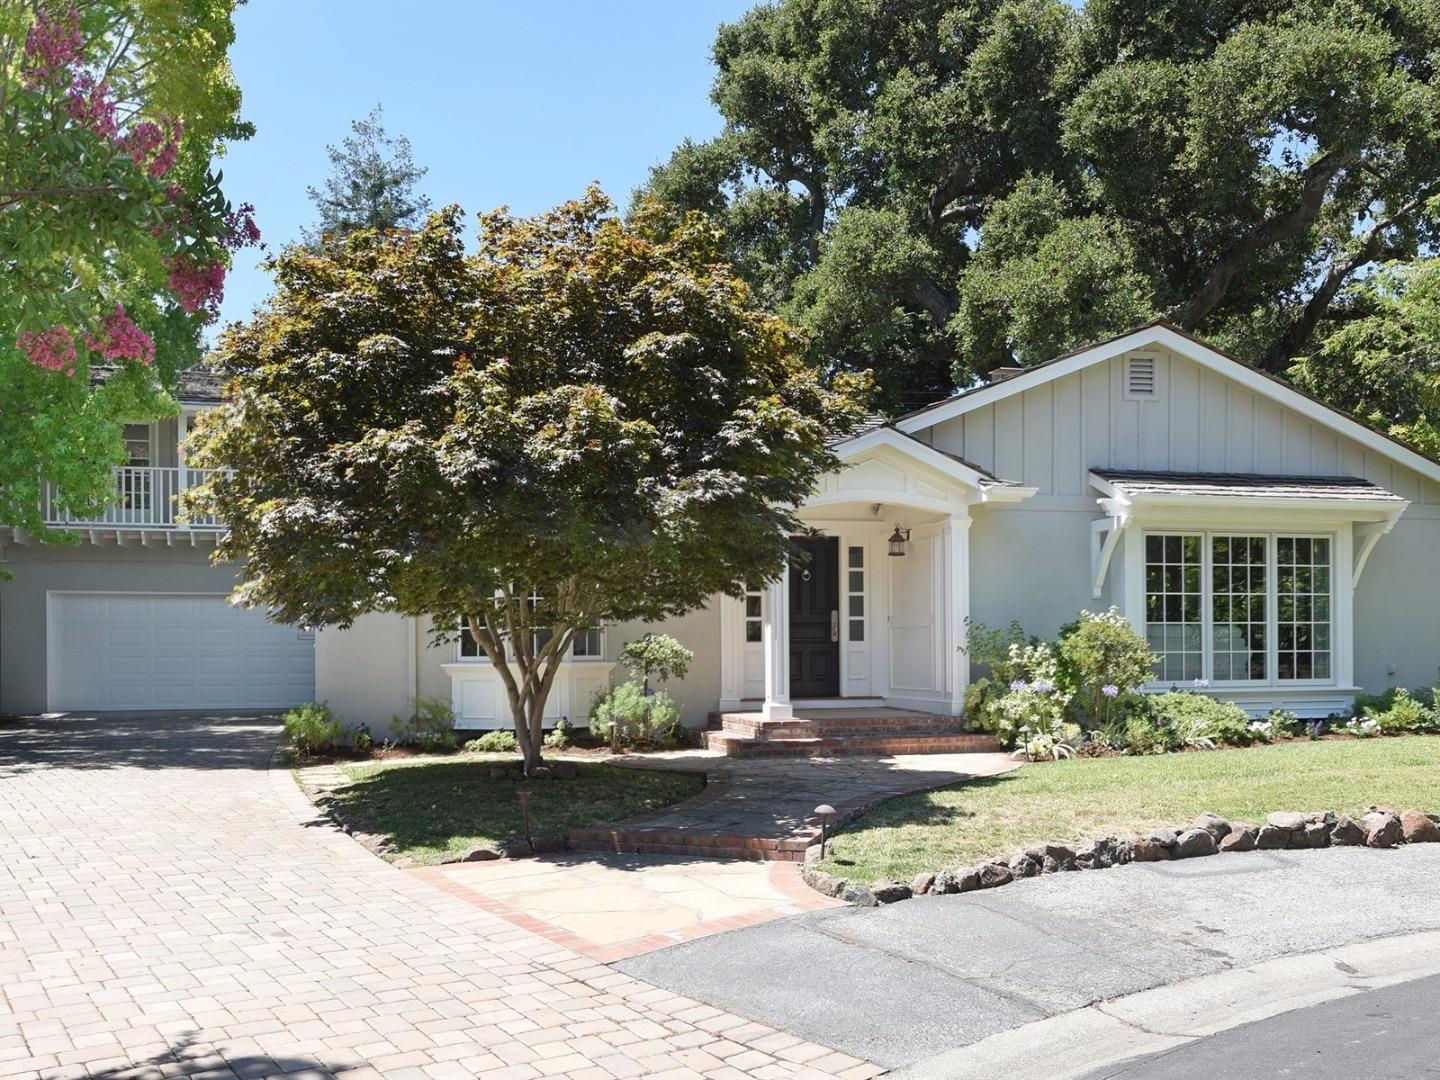 Single Family Home for Sale at 5 Bolton Place Menlo Park, California 94025 United States